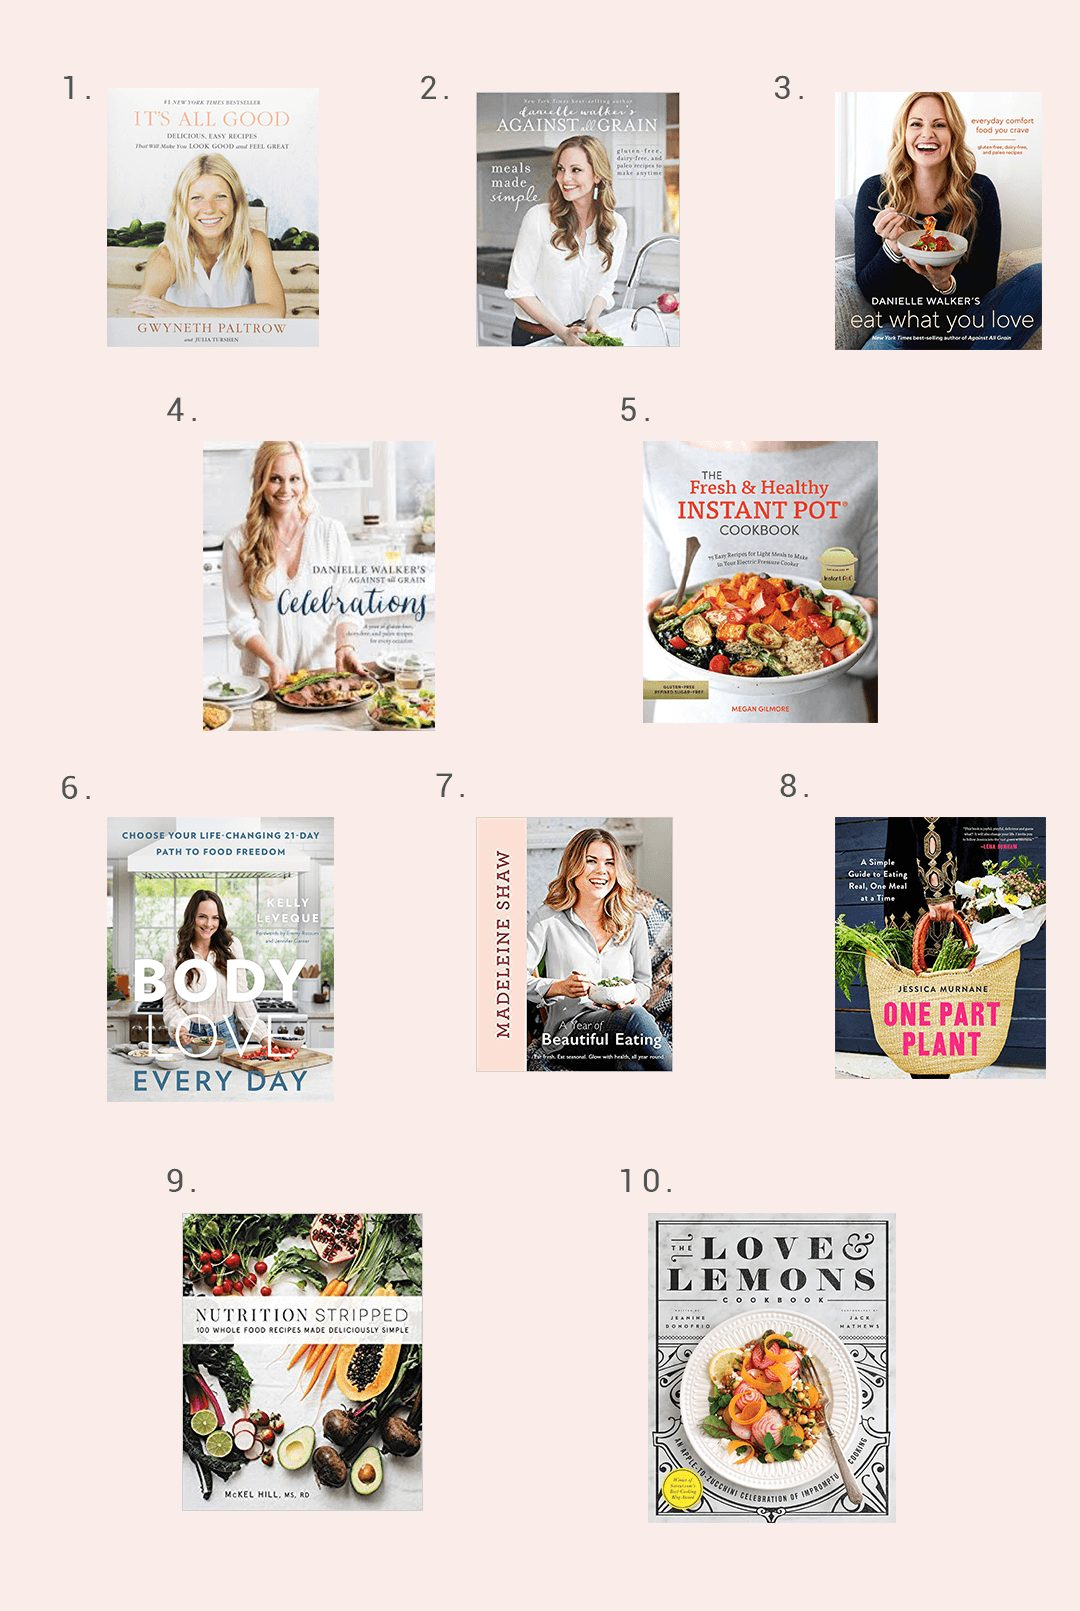 Best Gluten Free Cookbooks - My Top 10 Picks #whatsavvysaid #glutenfree #glutenfreecookbooks #paleodiet #glutenfreediet